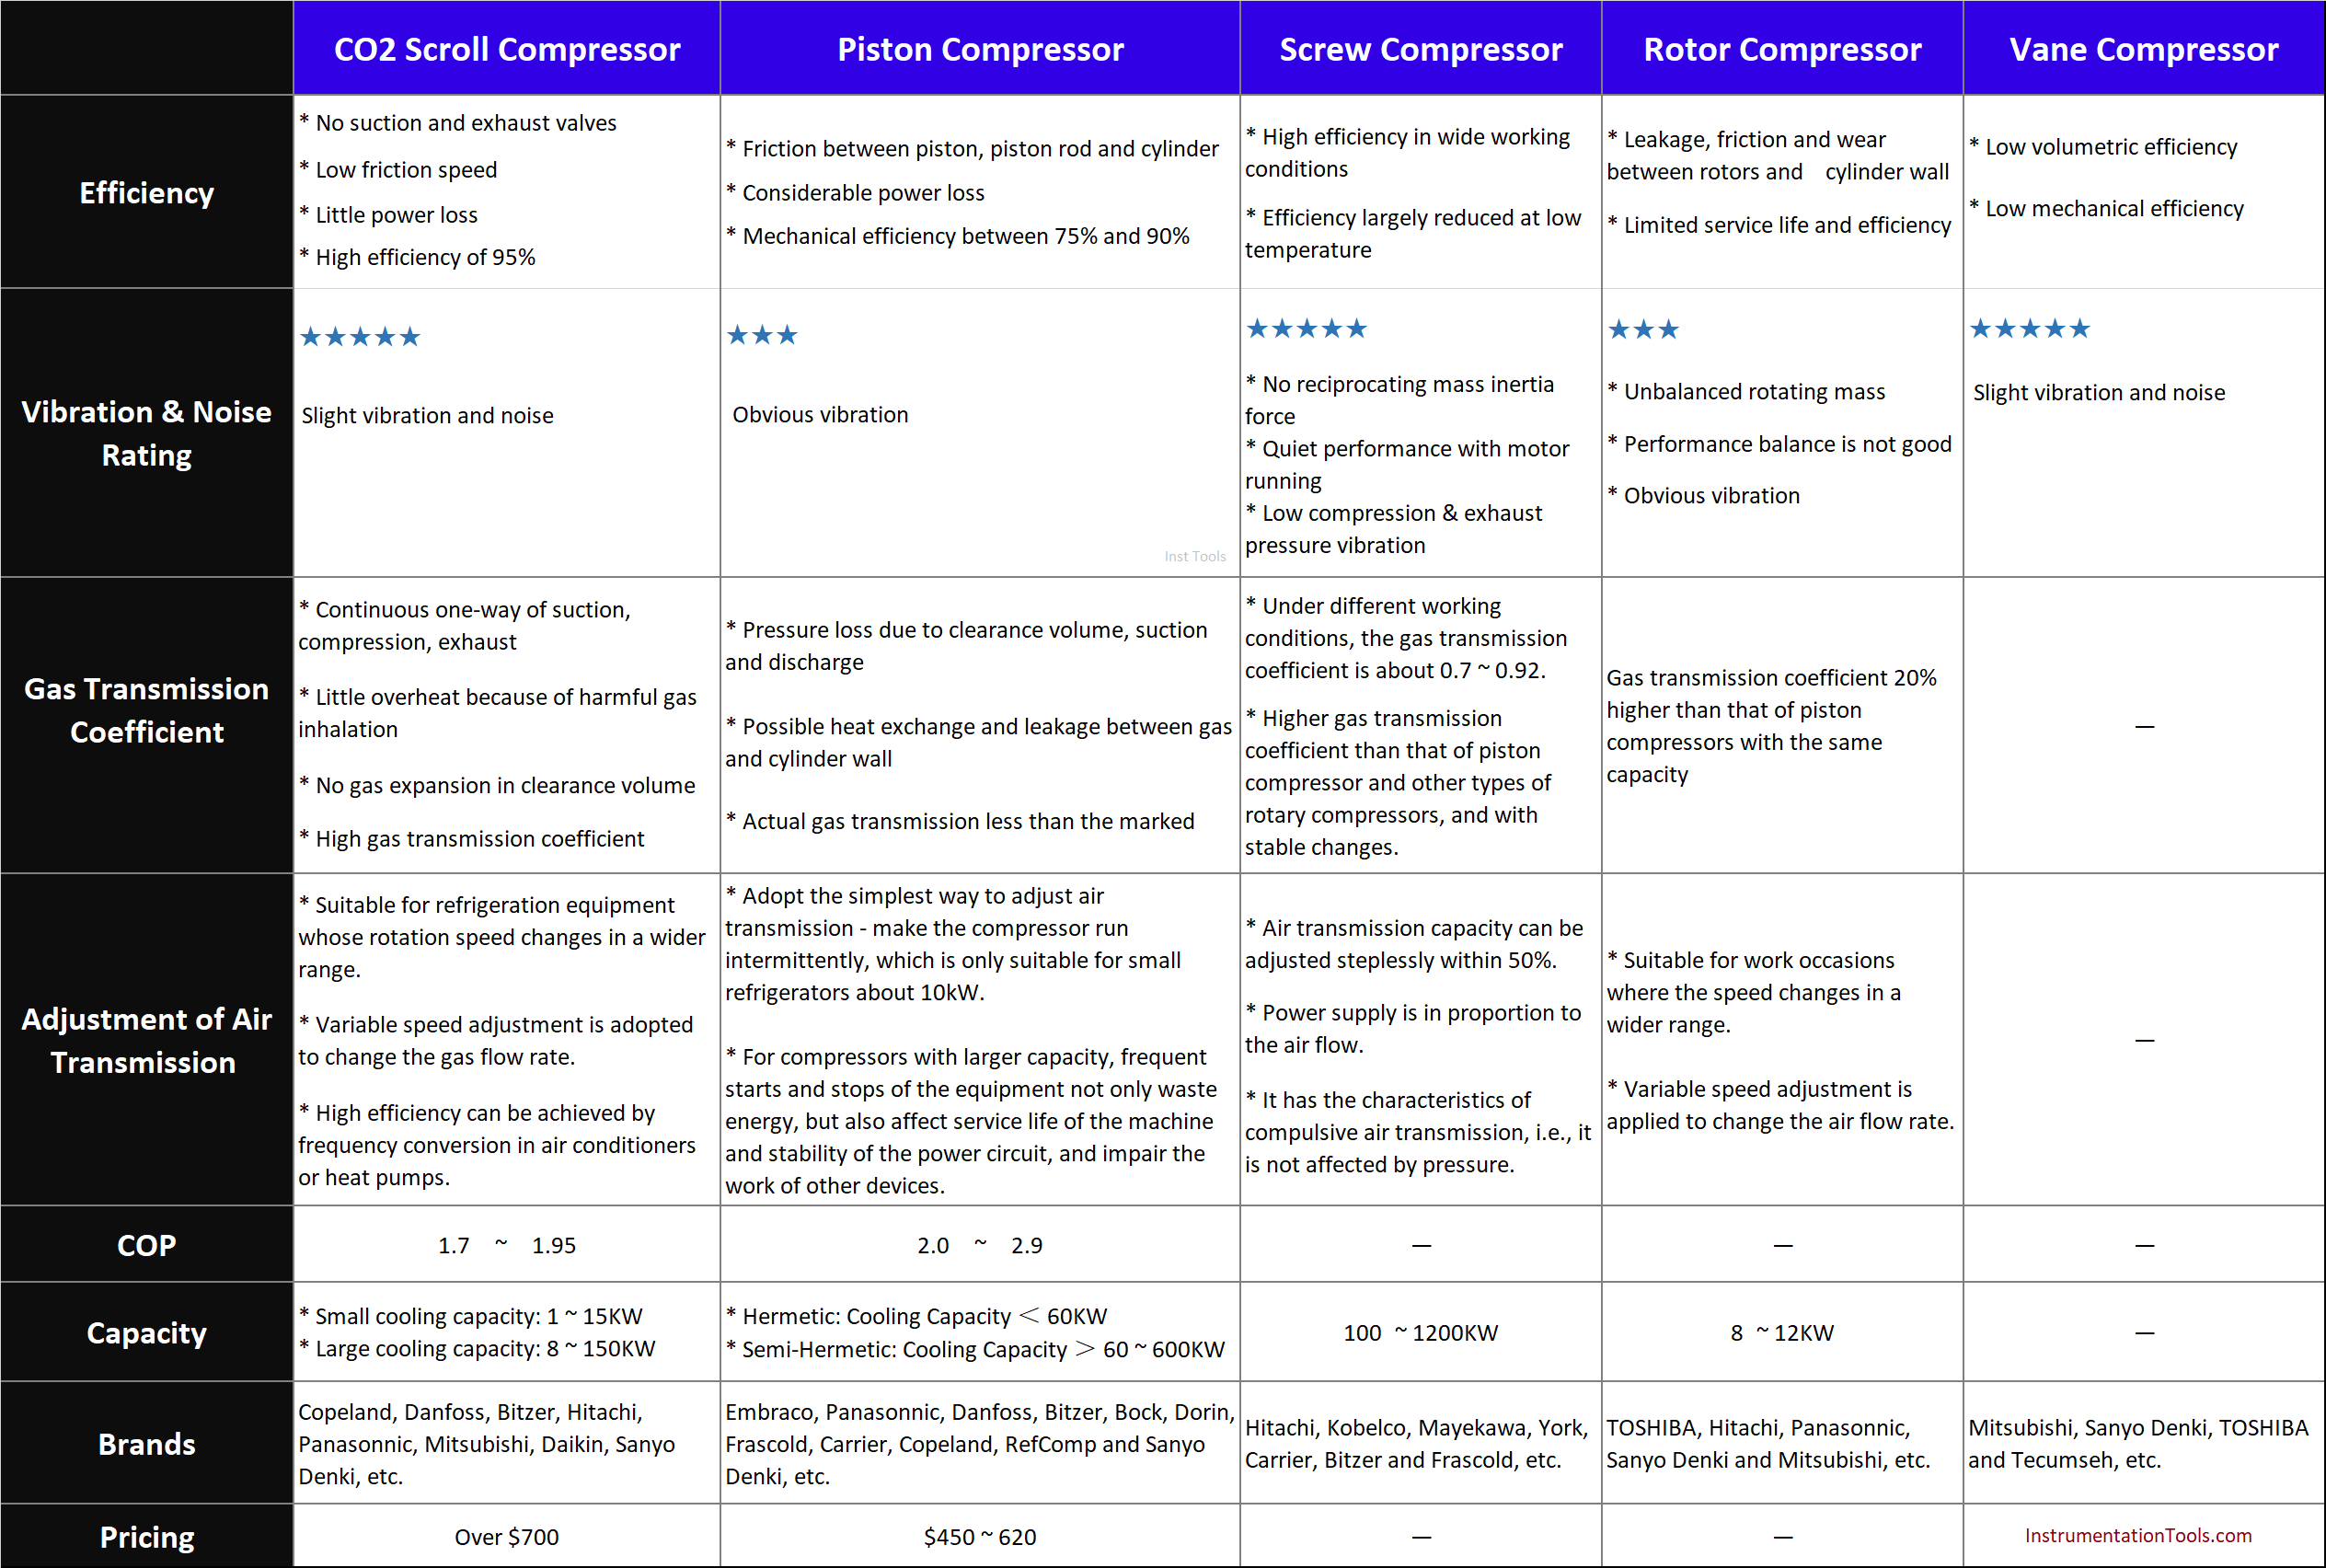 Comparison of different types of compressors